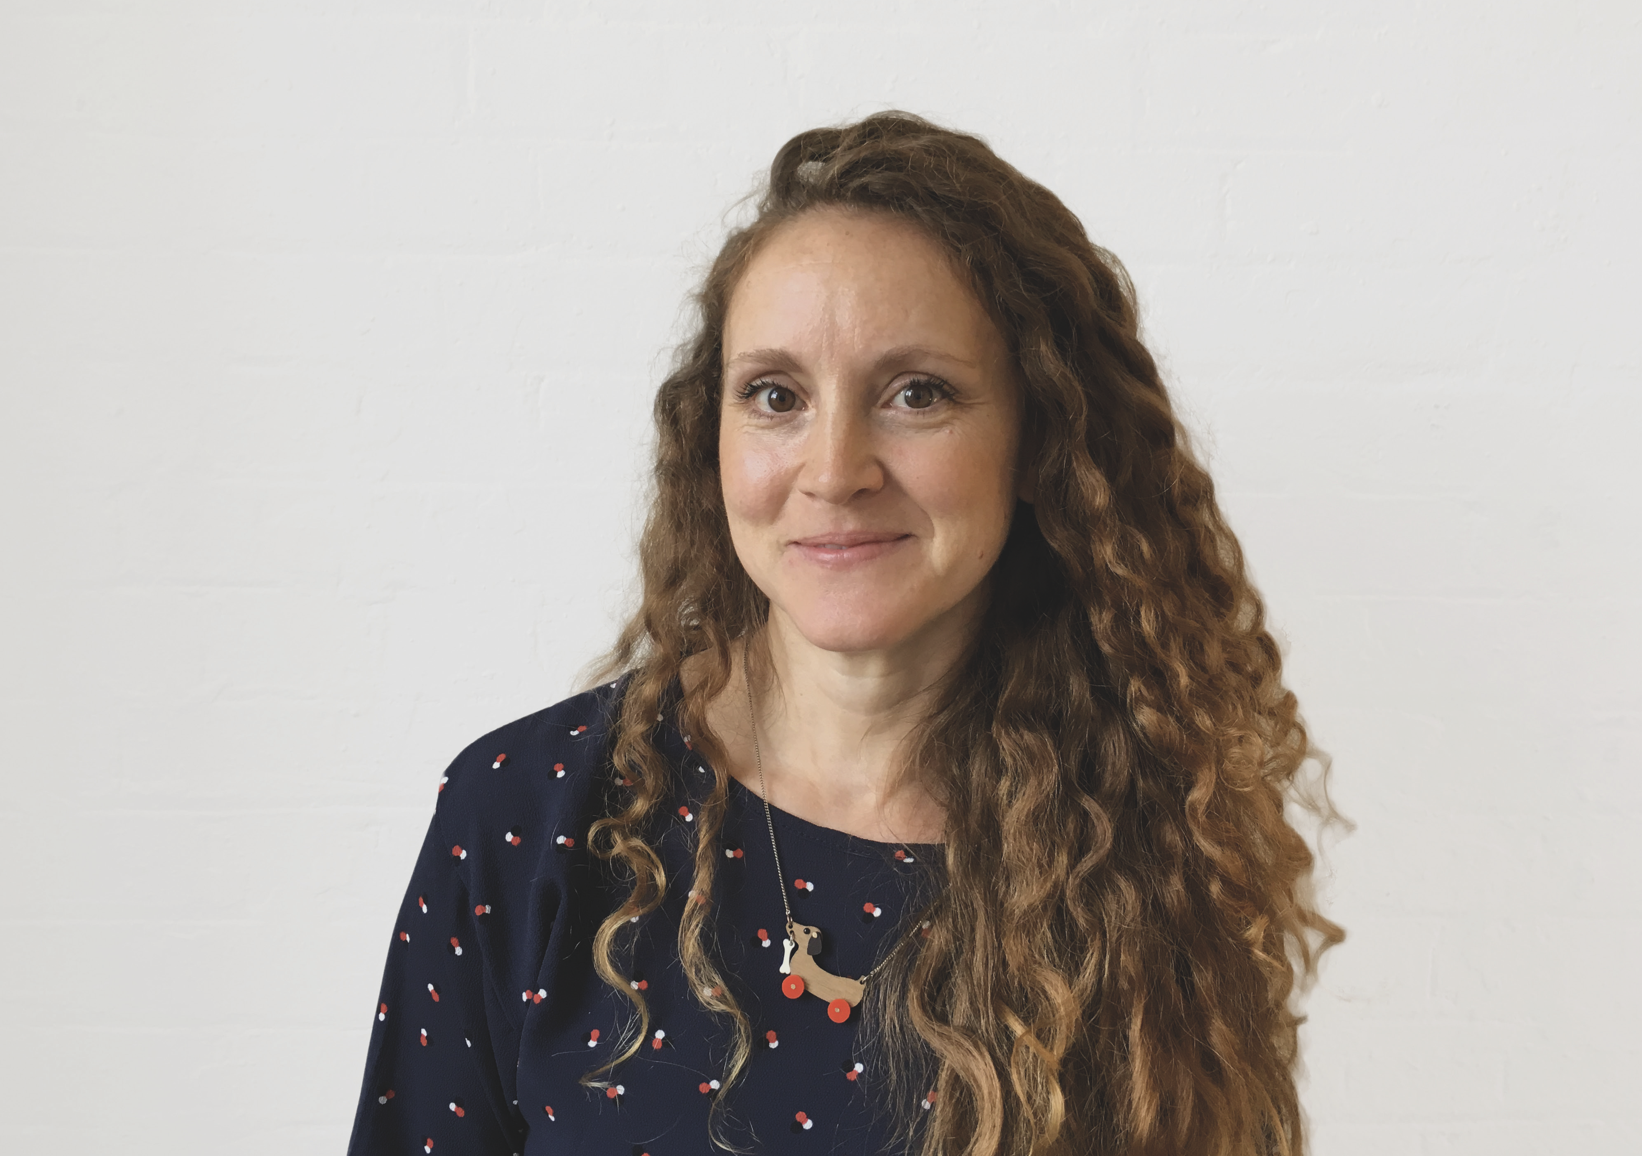 Interview with CHARLOTTE HILLENBRAND - CHARLOTTE HILLENBRAND, EXECUTIVE DIRECTOR OF DIGITAL & INNOVATION AT COMIC RELIEF, TALKS ABOUT TRANSFORMATION, AND HOW CULTURE IS KEY TO SUCCESSFUL CHANGE IN ANY BUSINESS